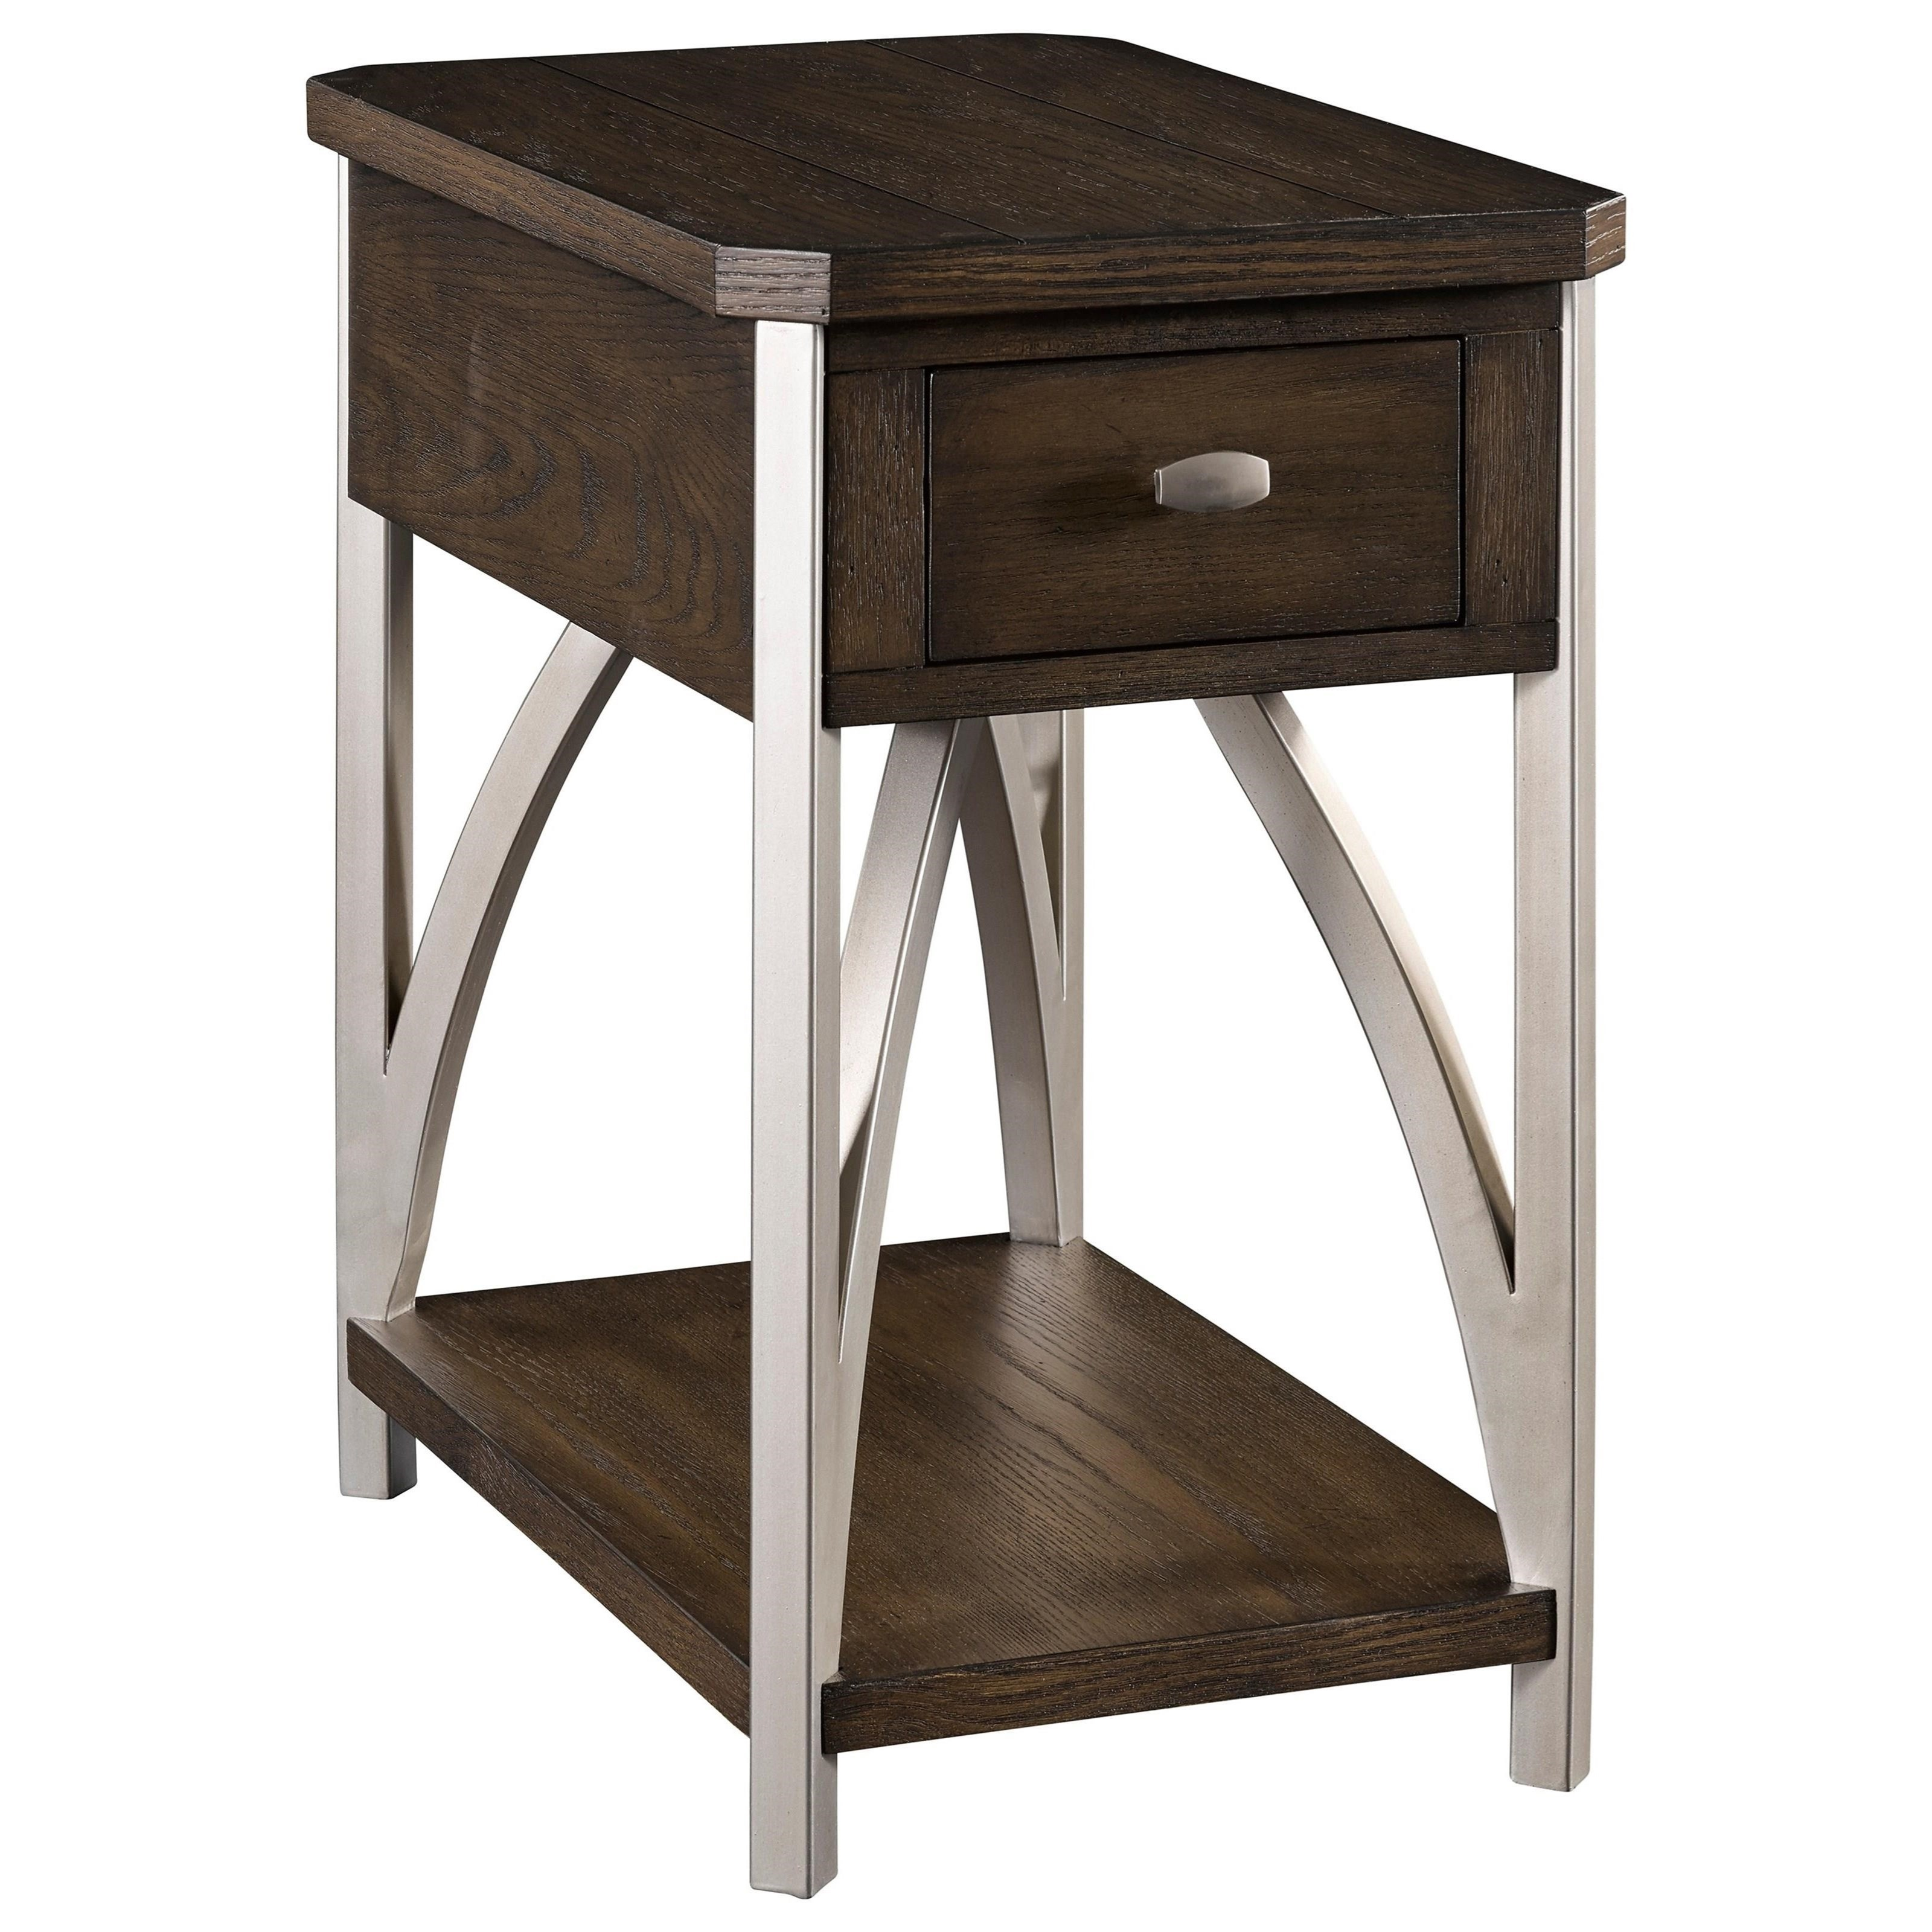 Broyhill Furniture Nash Chairside Table Item Number 3125 004